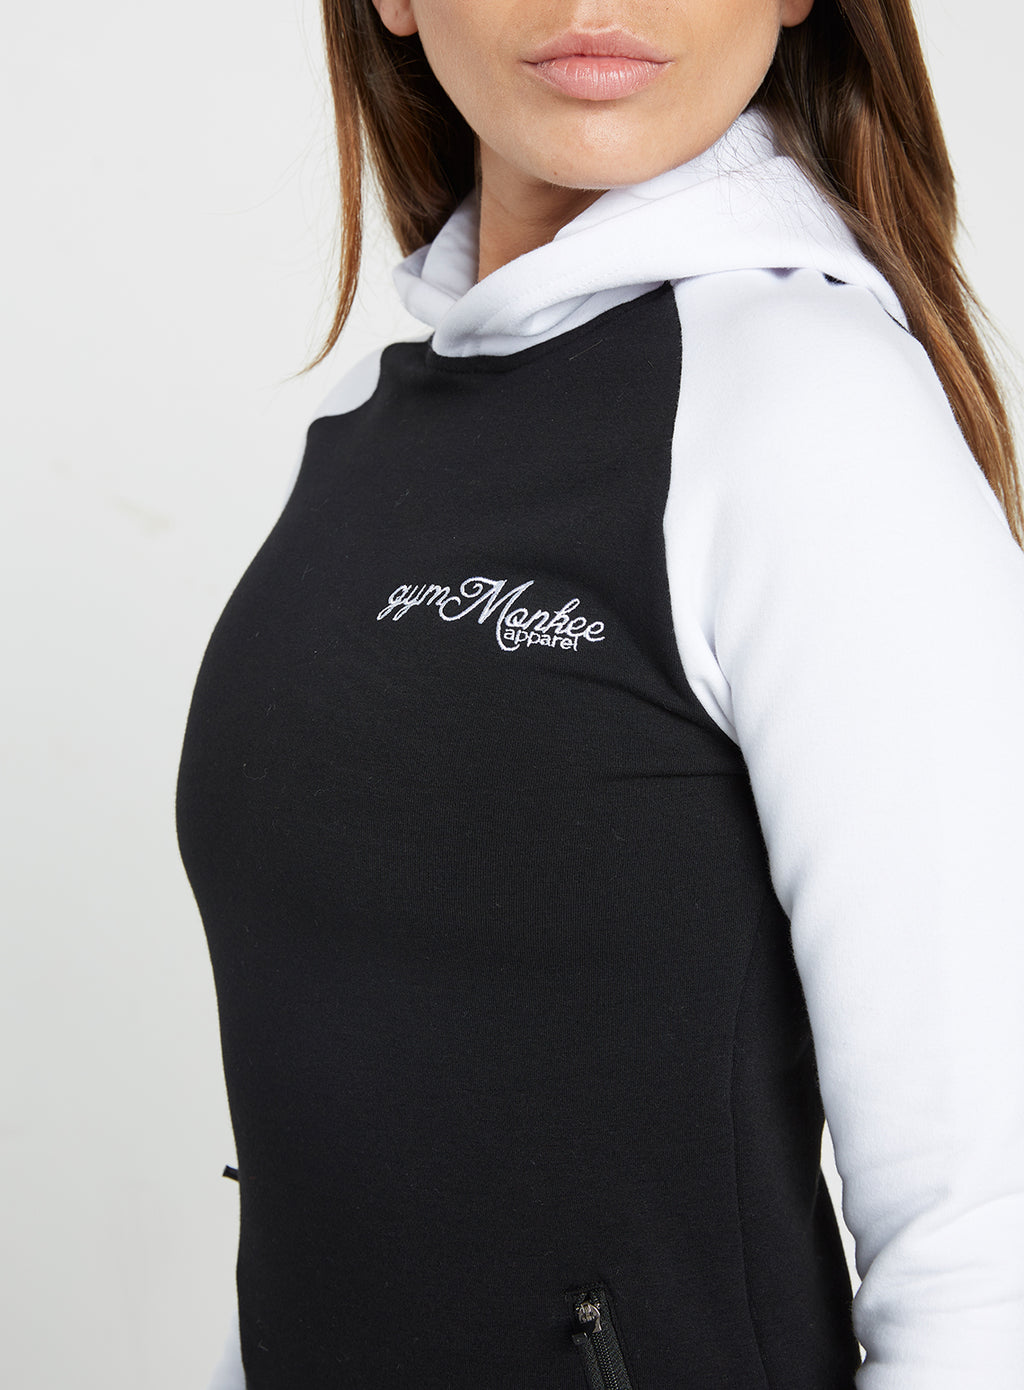 Gym Monkee - Ladies Black and White Hoodie FRONT LOGO